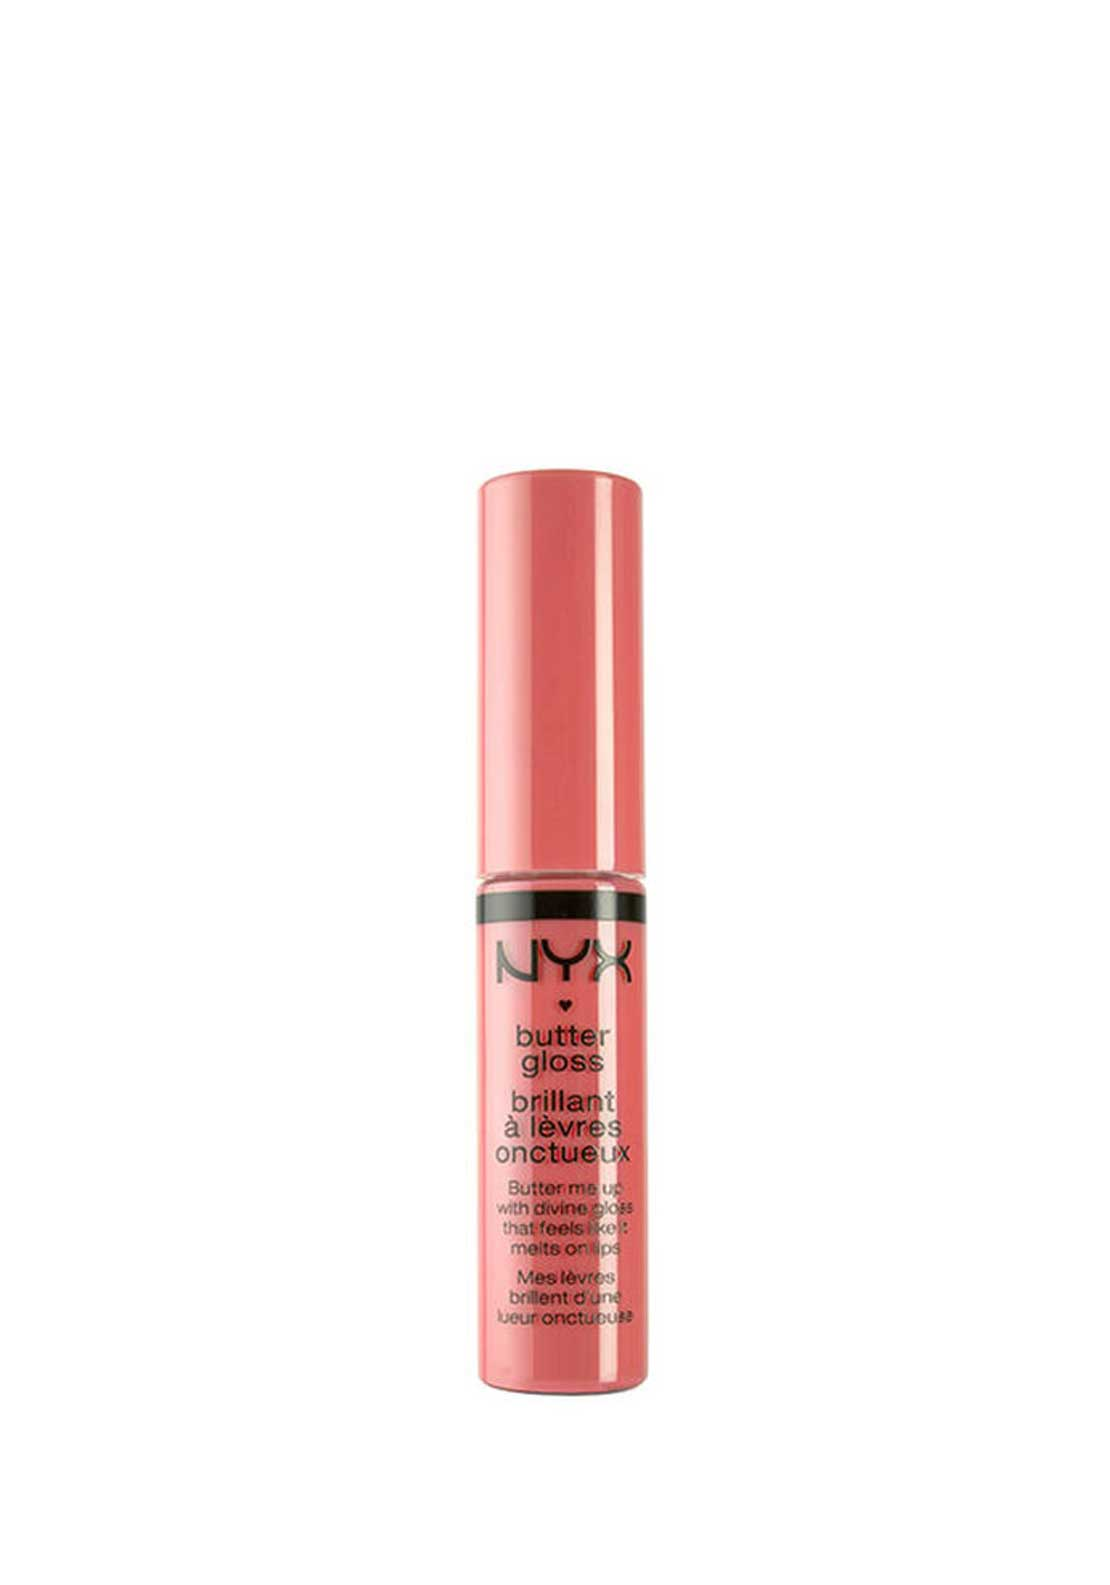 NYX Make Up Butter Gloss Lip Gloss, 08 Apple Strudel